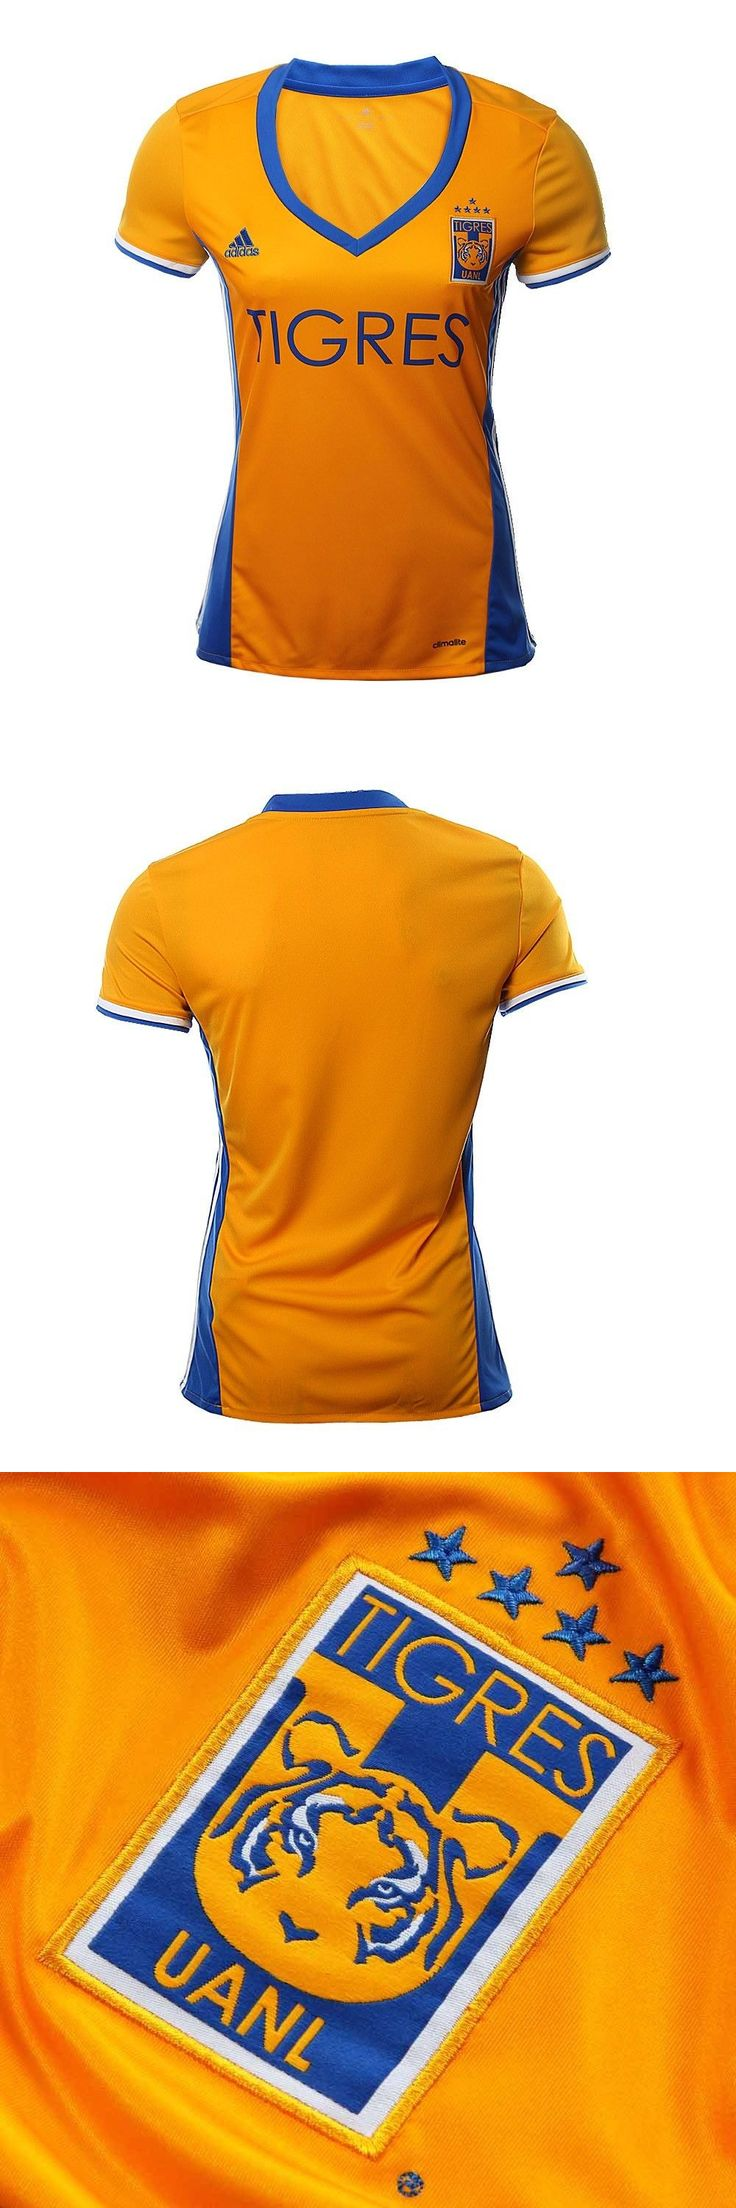 Women 159098: Tigres Uanl Campeon Adidas Women Home Jersey 2016/17 (5Ta. Estrella) BUY IT NOW ONLY: $99.99